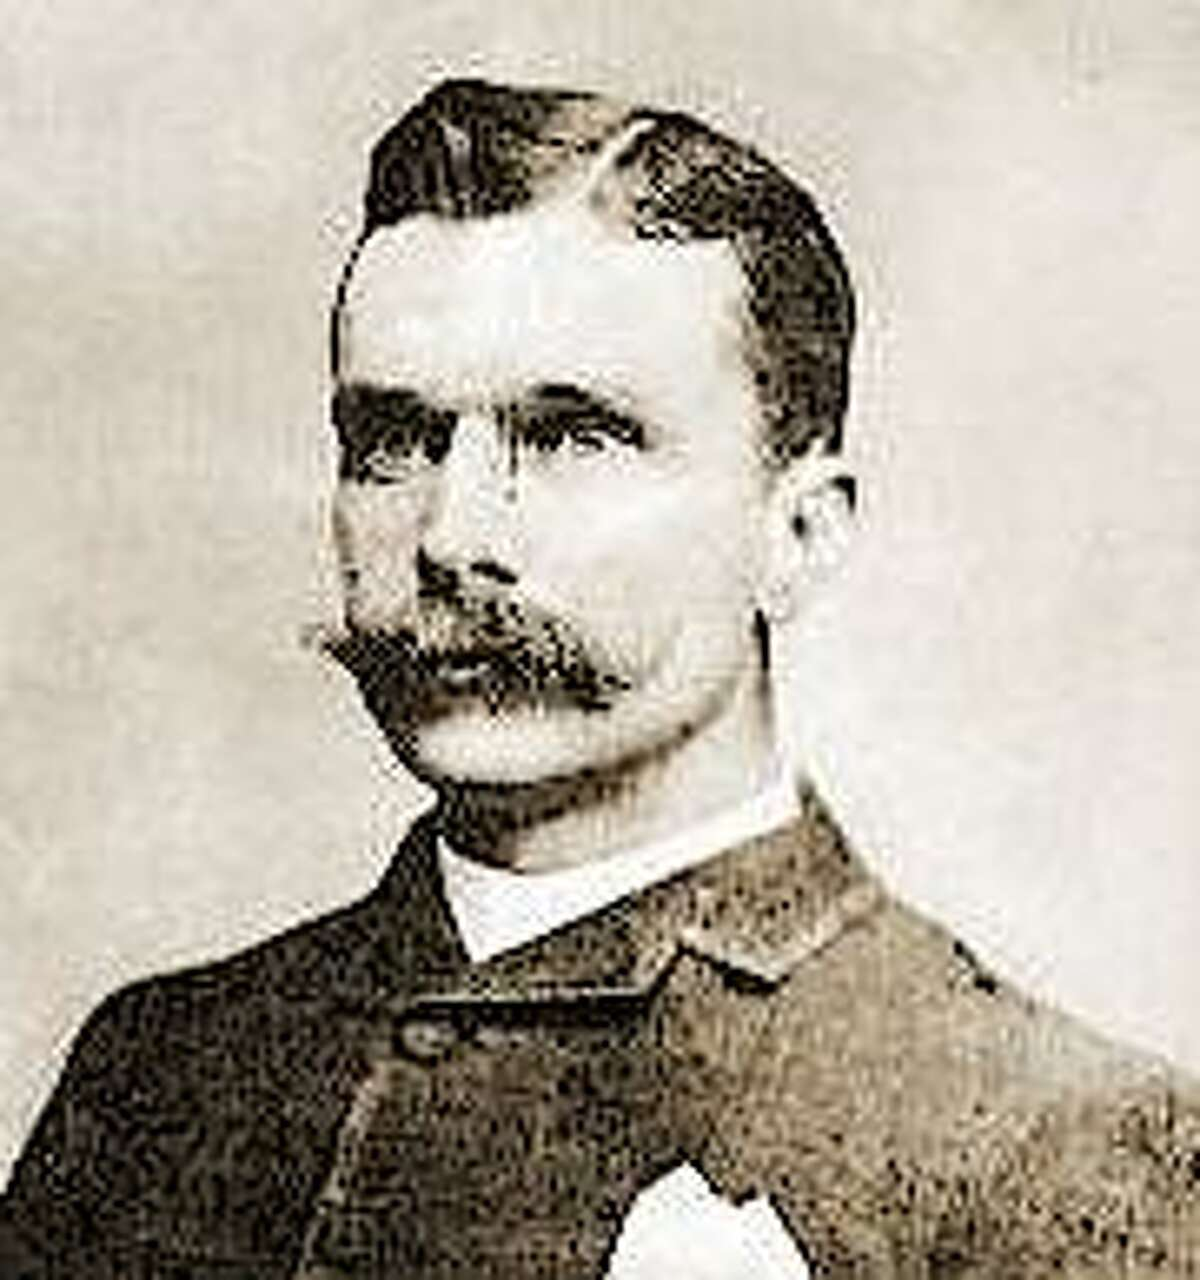 Sam Bass Born in Mitchell, Indiana, on July 21, 1851, Bass made his way to Denton, Texas, by the age of 19. Bass tried his hand in horse racing before robbing trains and stagecoaches all around the United States. By the spring of 1878, the Texas Rangers drove Bass and his gang out of North Texas down south. Bass was believed to have been shot by a Texas Ranger while he and his gang were on their way to rob a bank. Bass died at the age of 27 in 1878 in a pasture near Round Rock.Source: Frontier Times